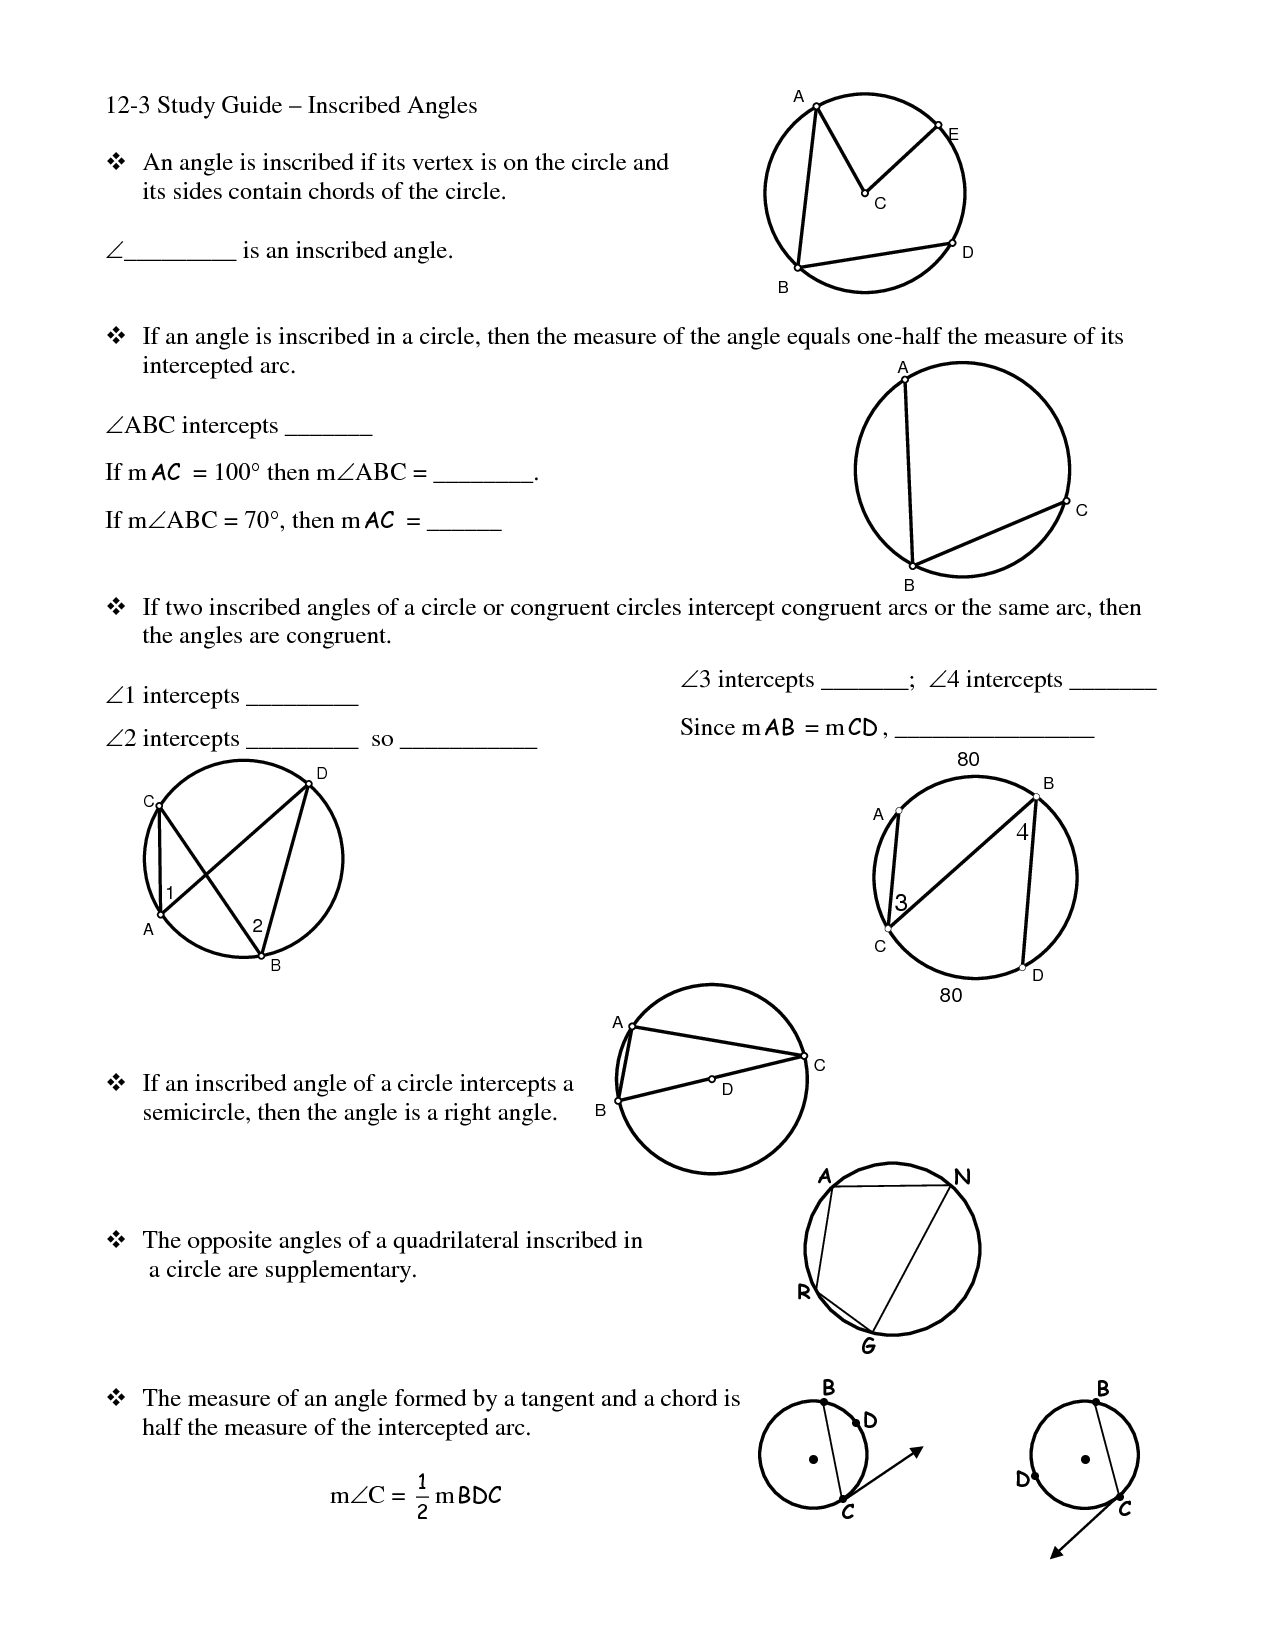 12 Best Images Of Circle Arcs And Angles Worksheets  Geometry Circle Worksheets, Central And